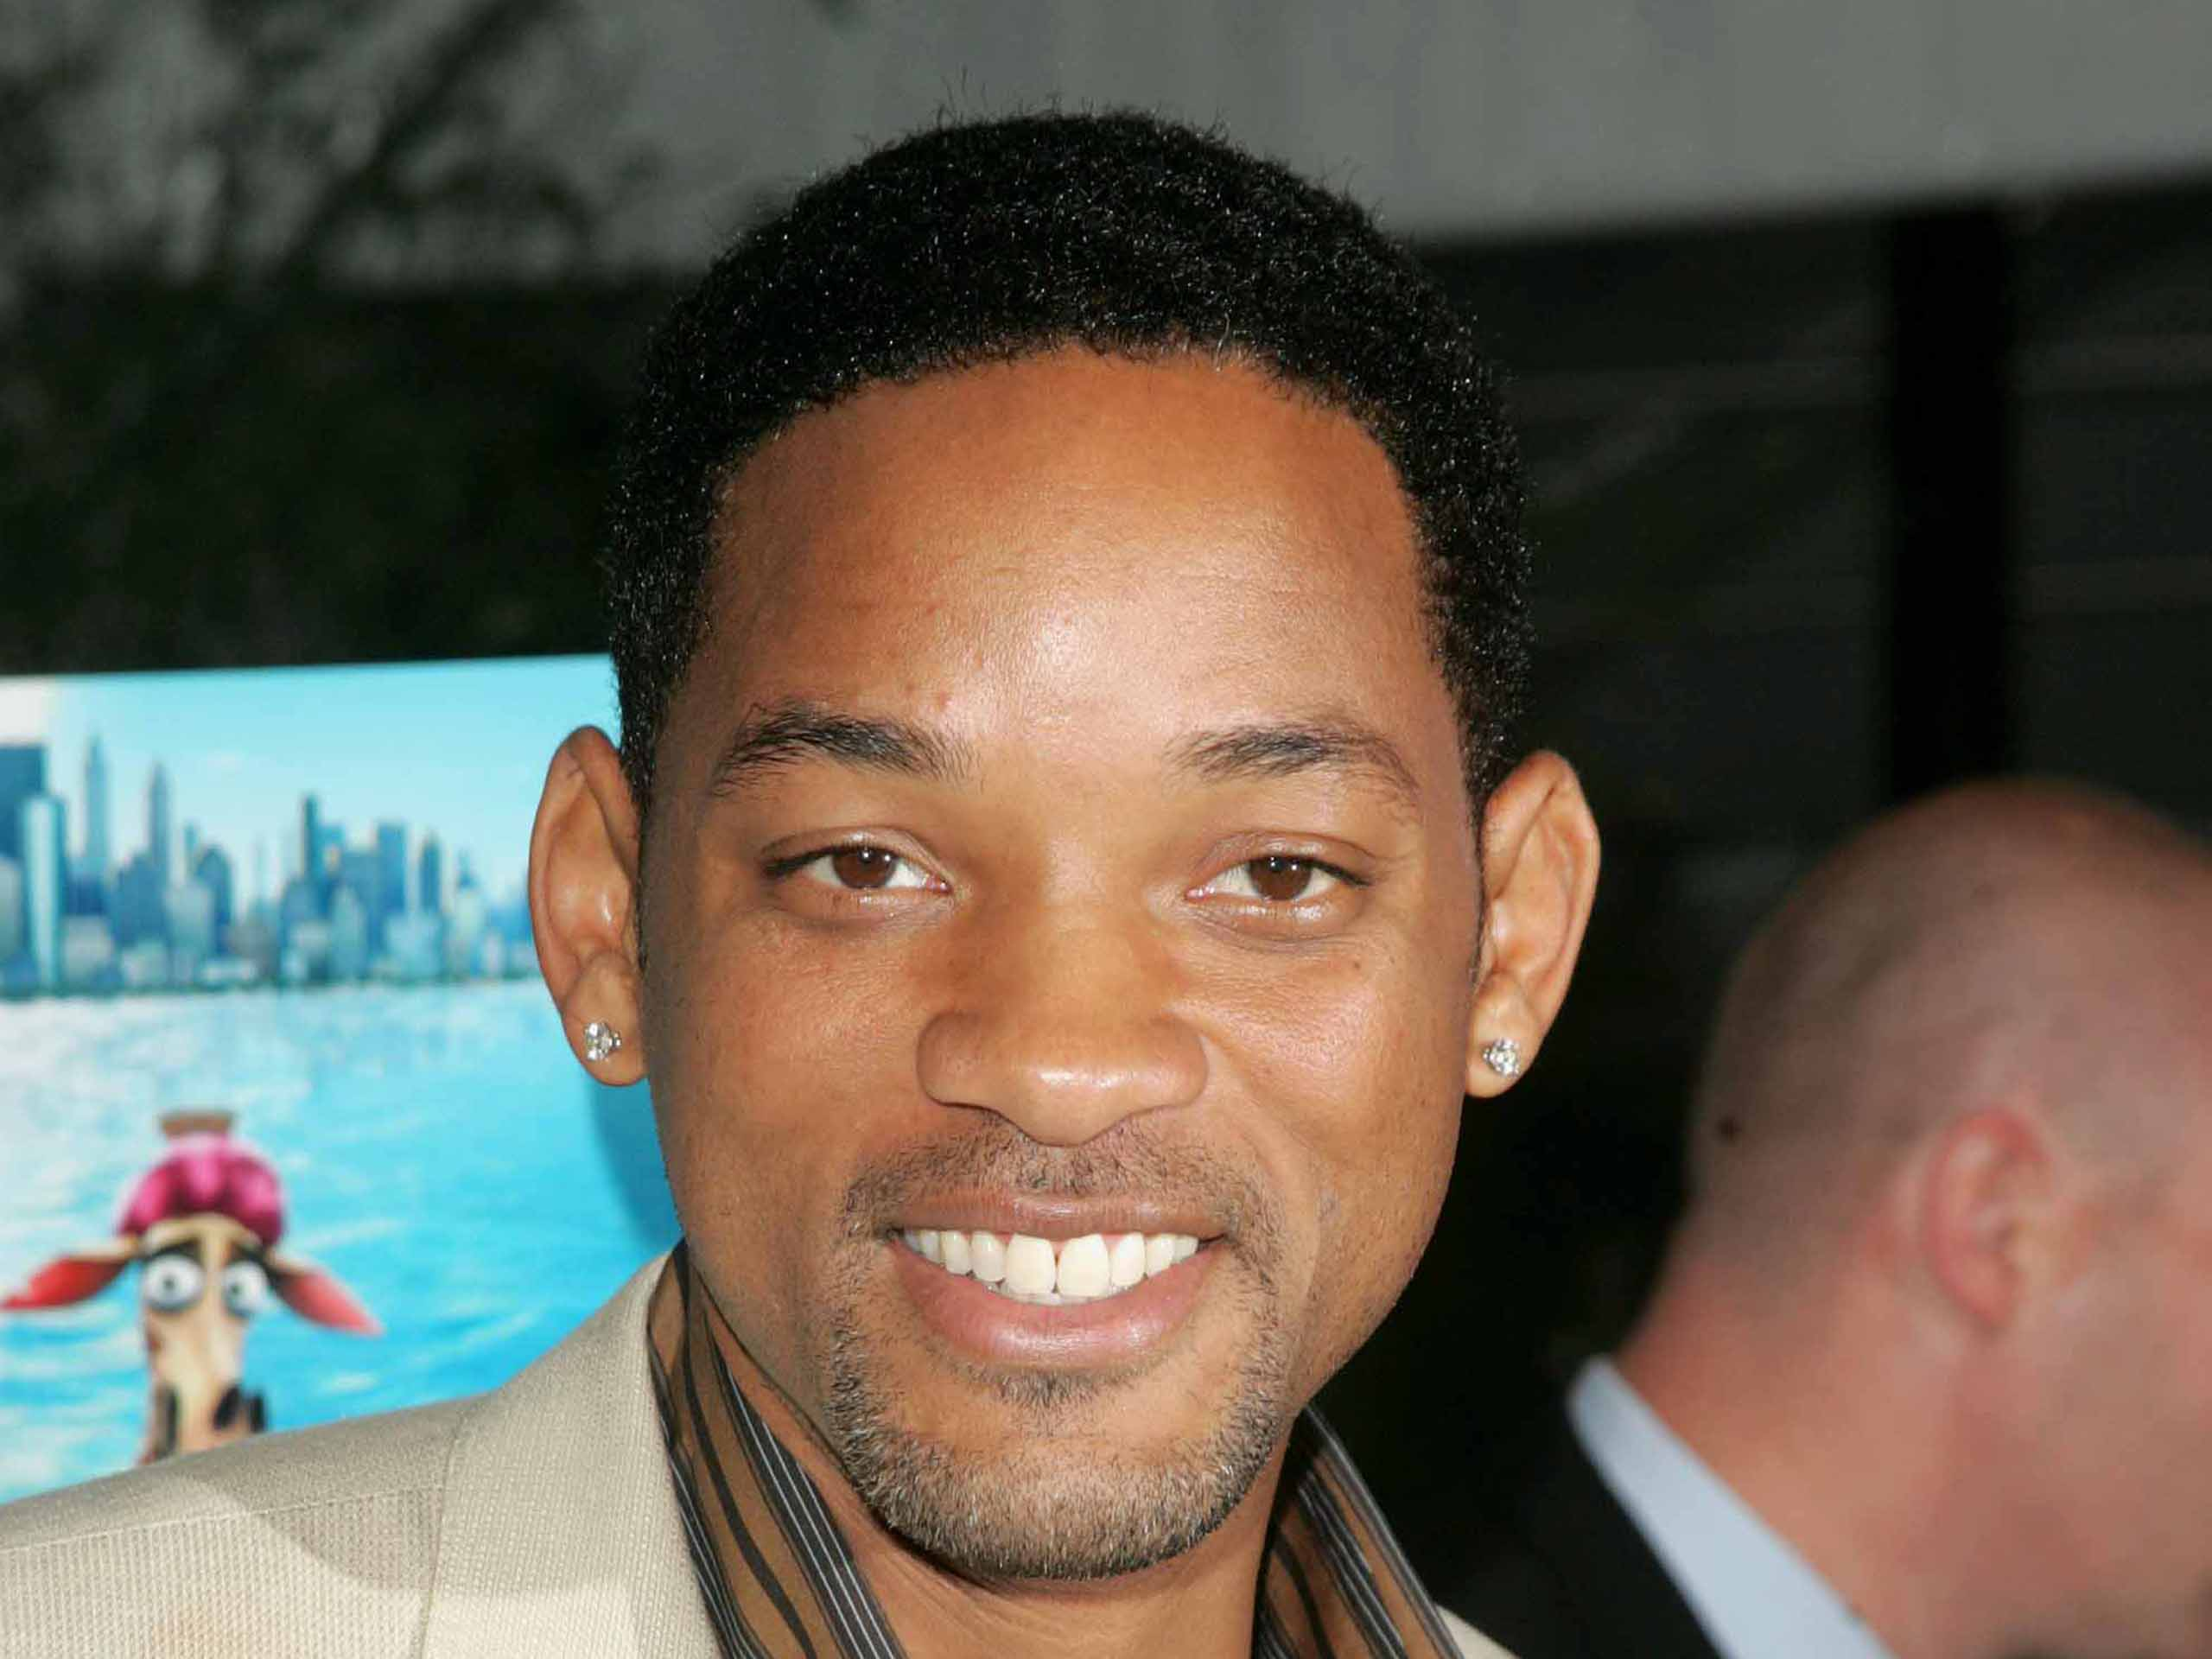 VIDEO: Will Smith cachetea a un reportero, por un beso